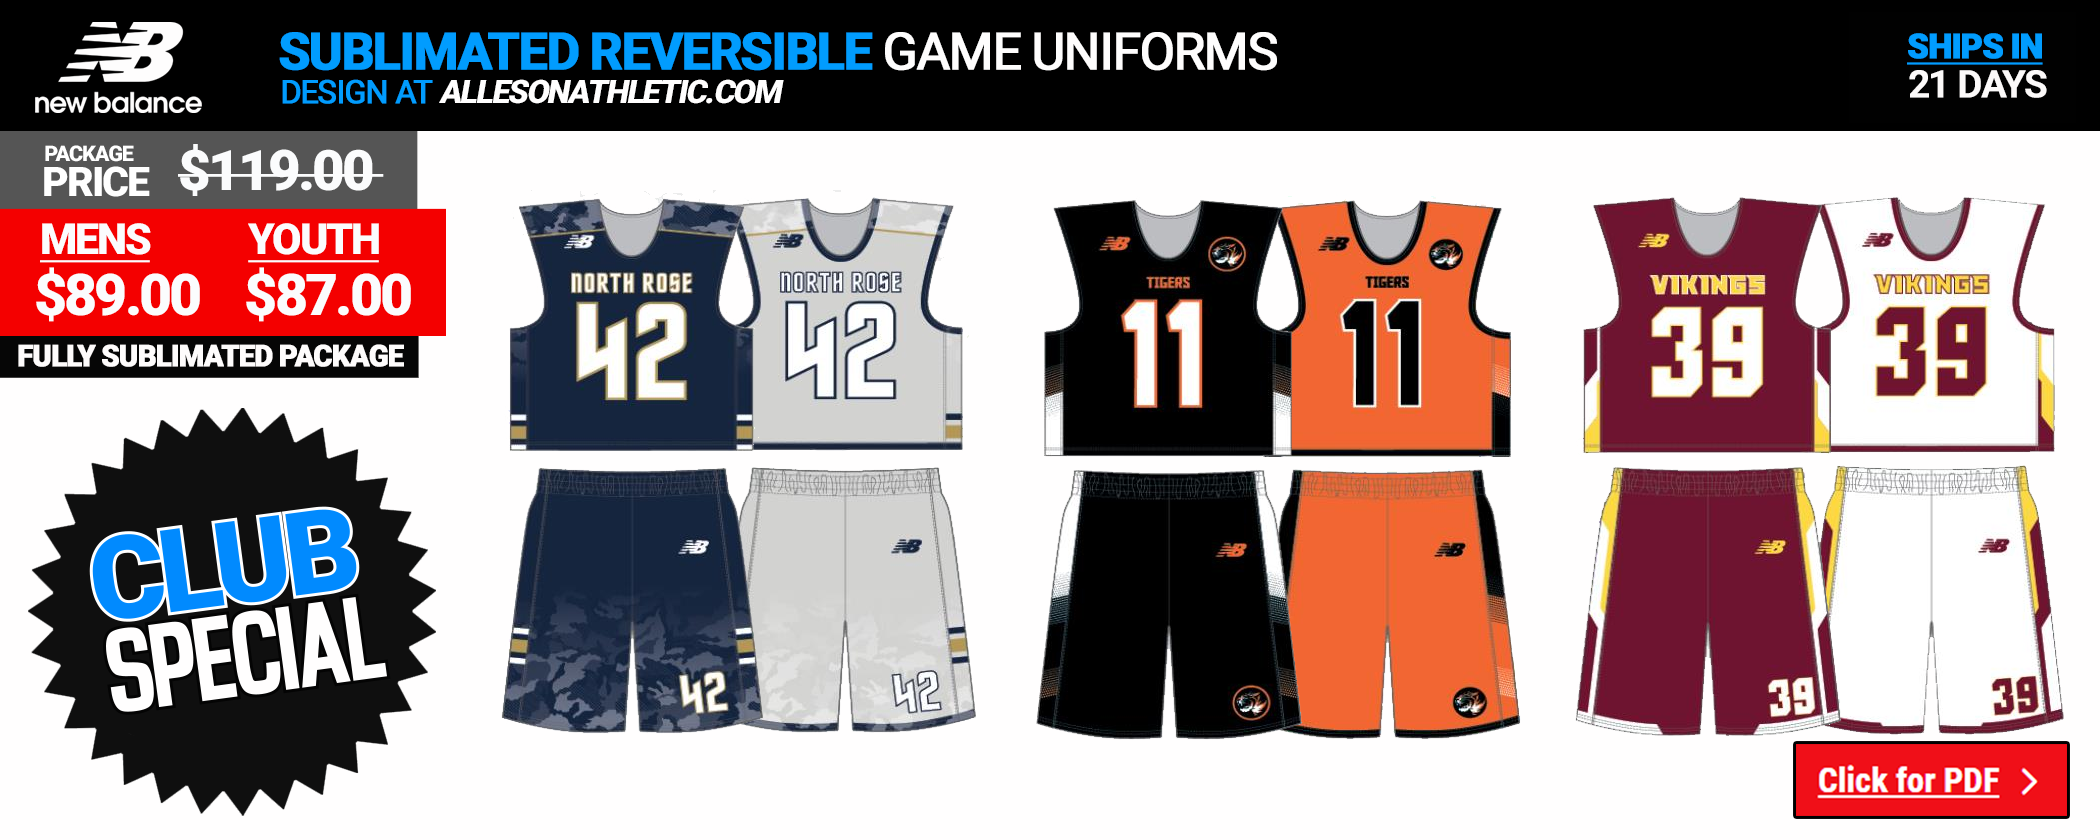 Mens Lacrosse Uniforms Sublimated Reversibles